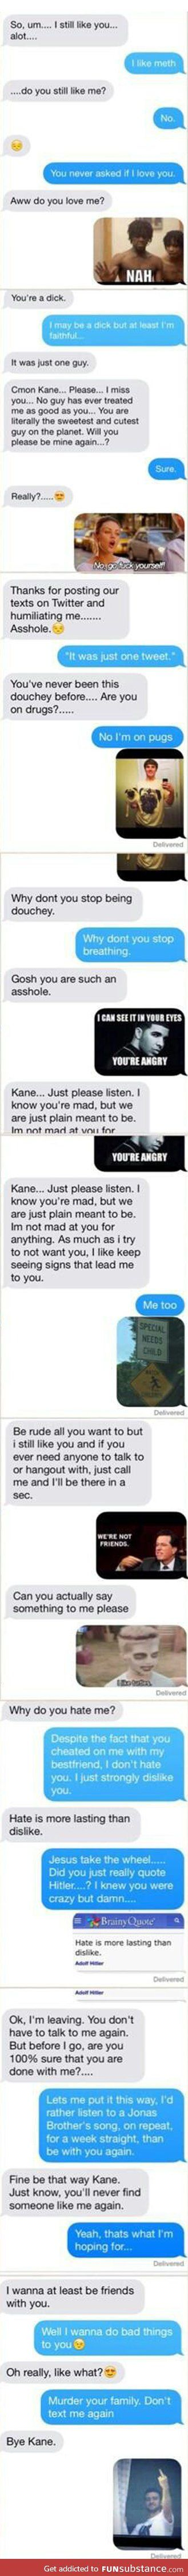 How to deal with a b*tch ex-gf....takes forever to read but omg hilarious